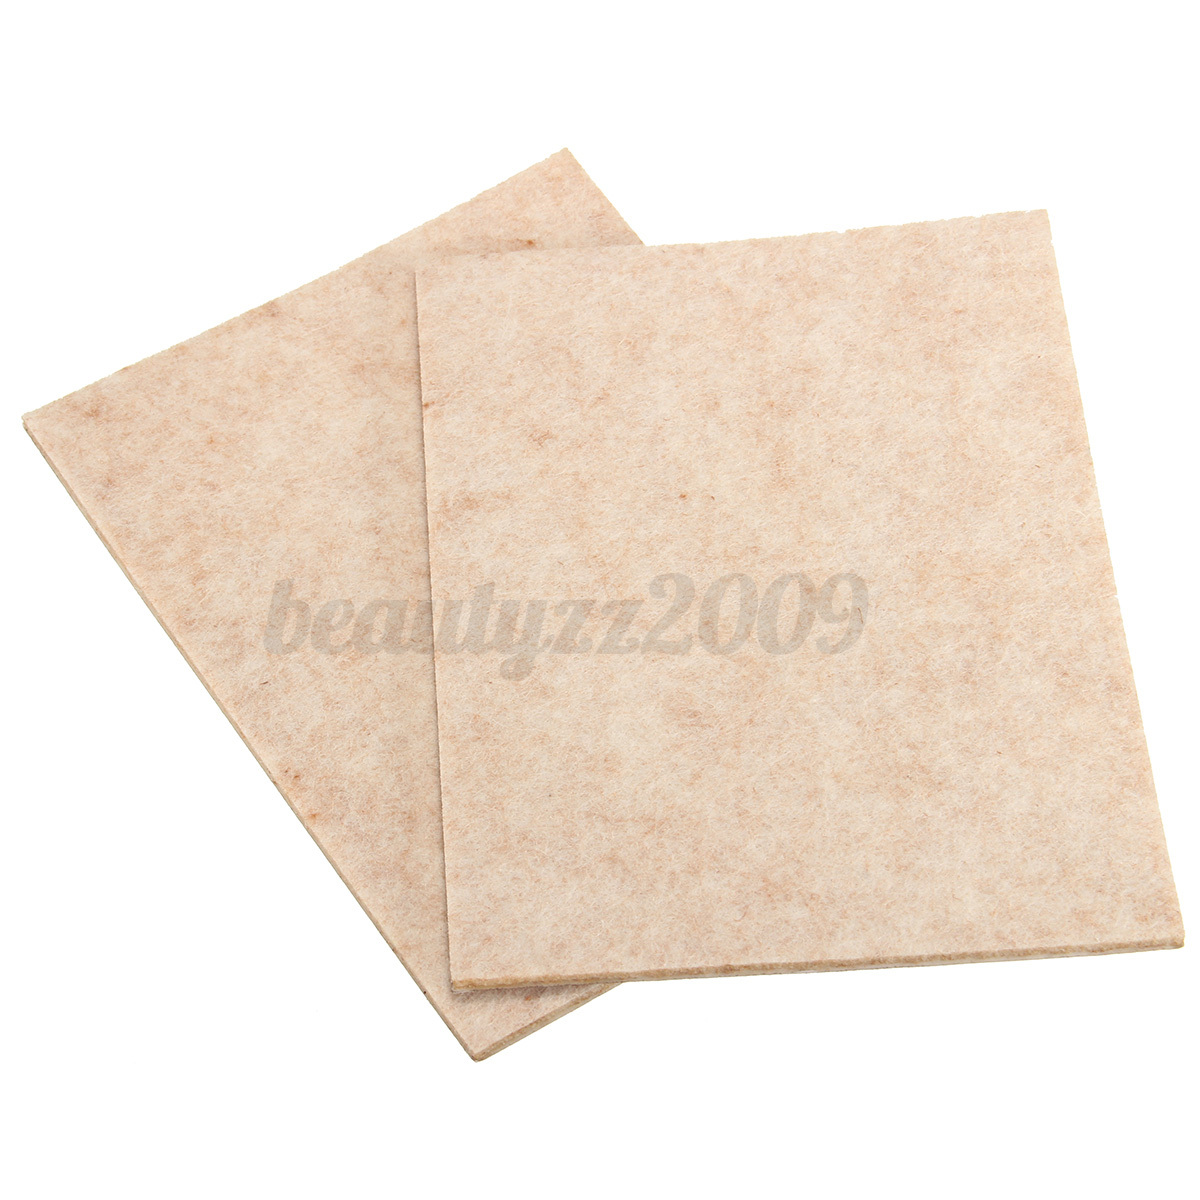 Felt Chair Pads Heavy Duty Self Adhesive Furniture Protective Felt Pads 11